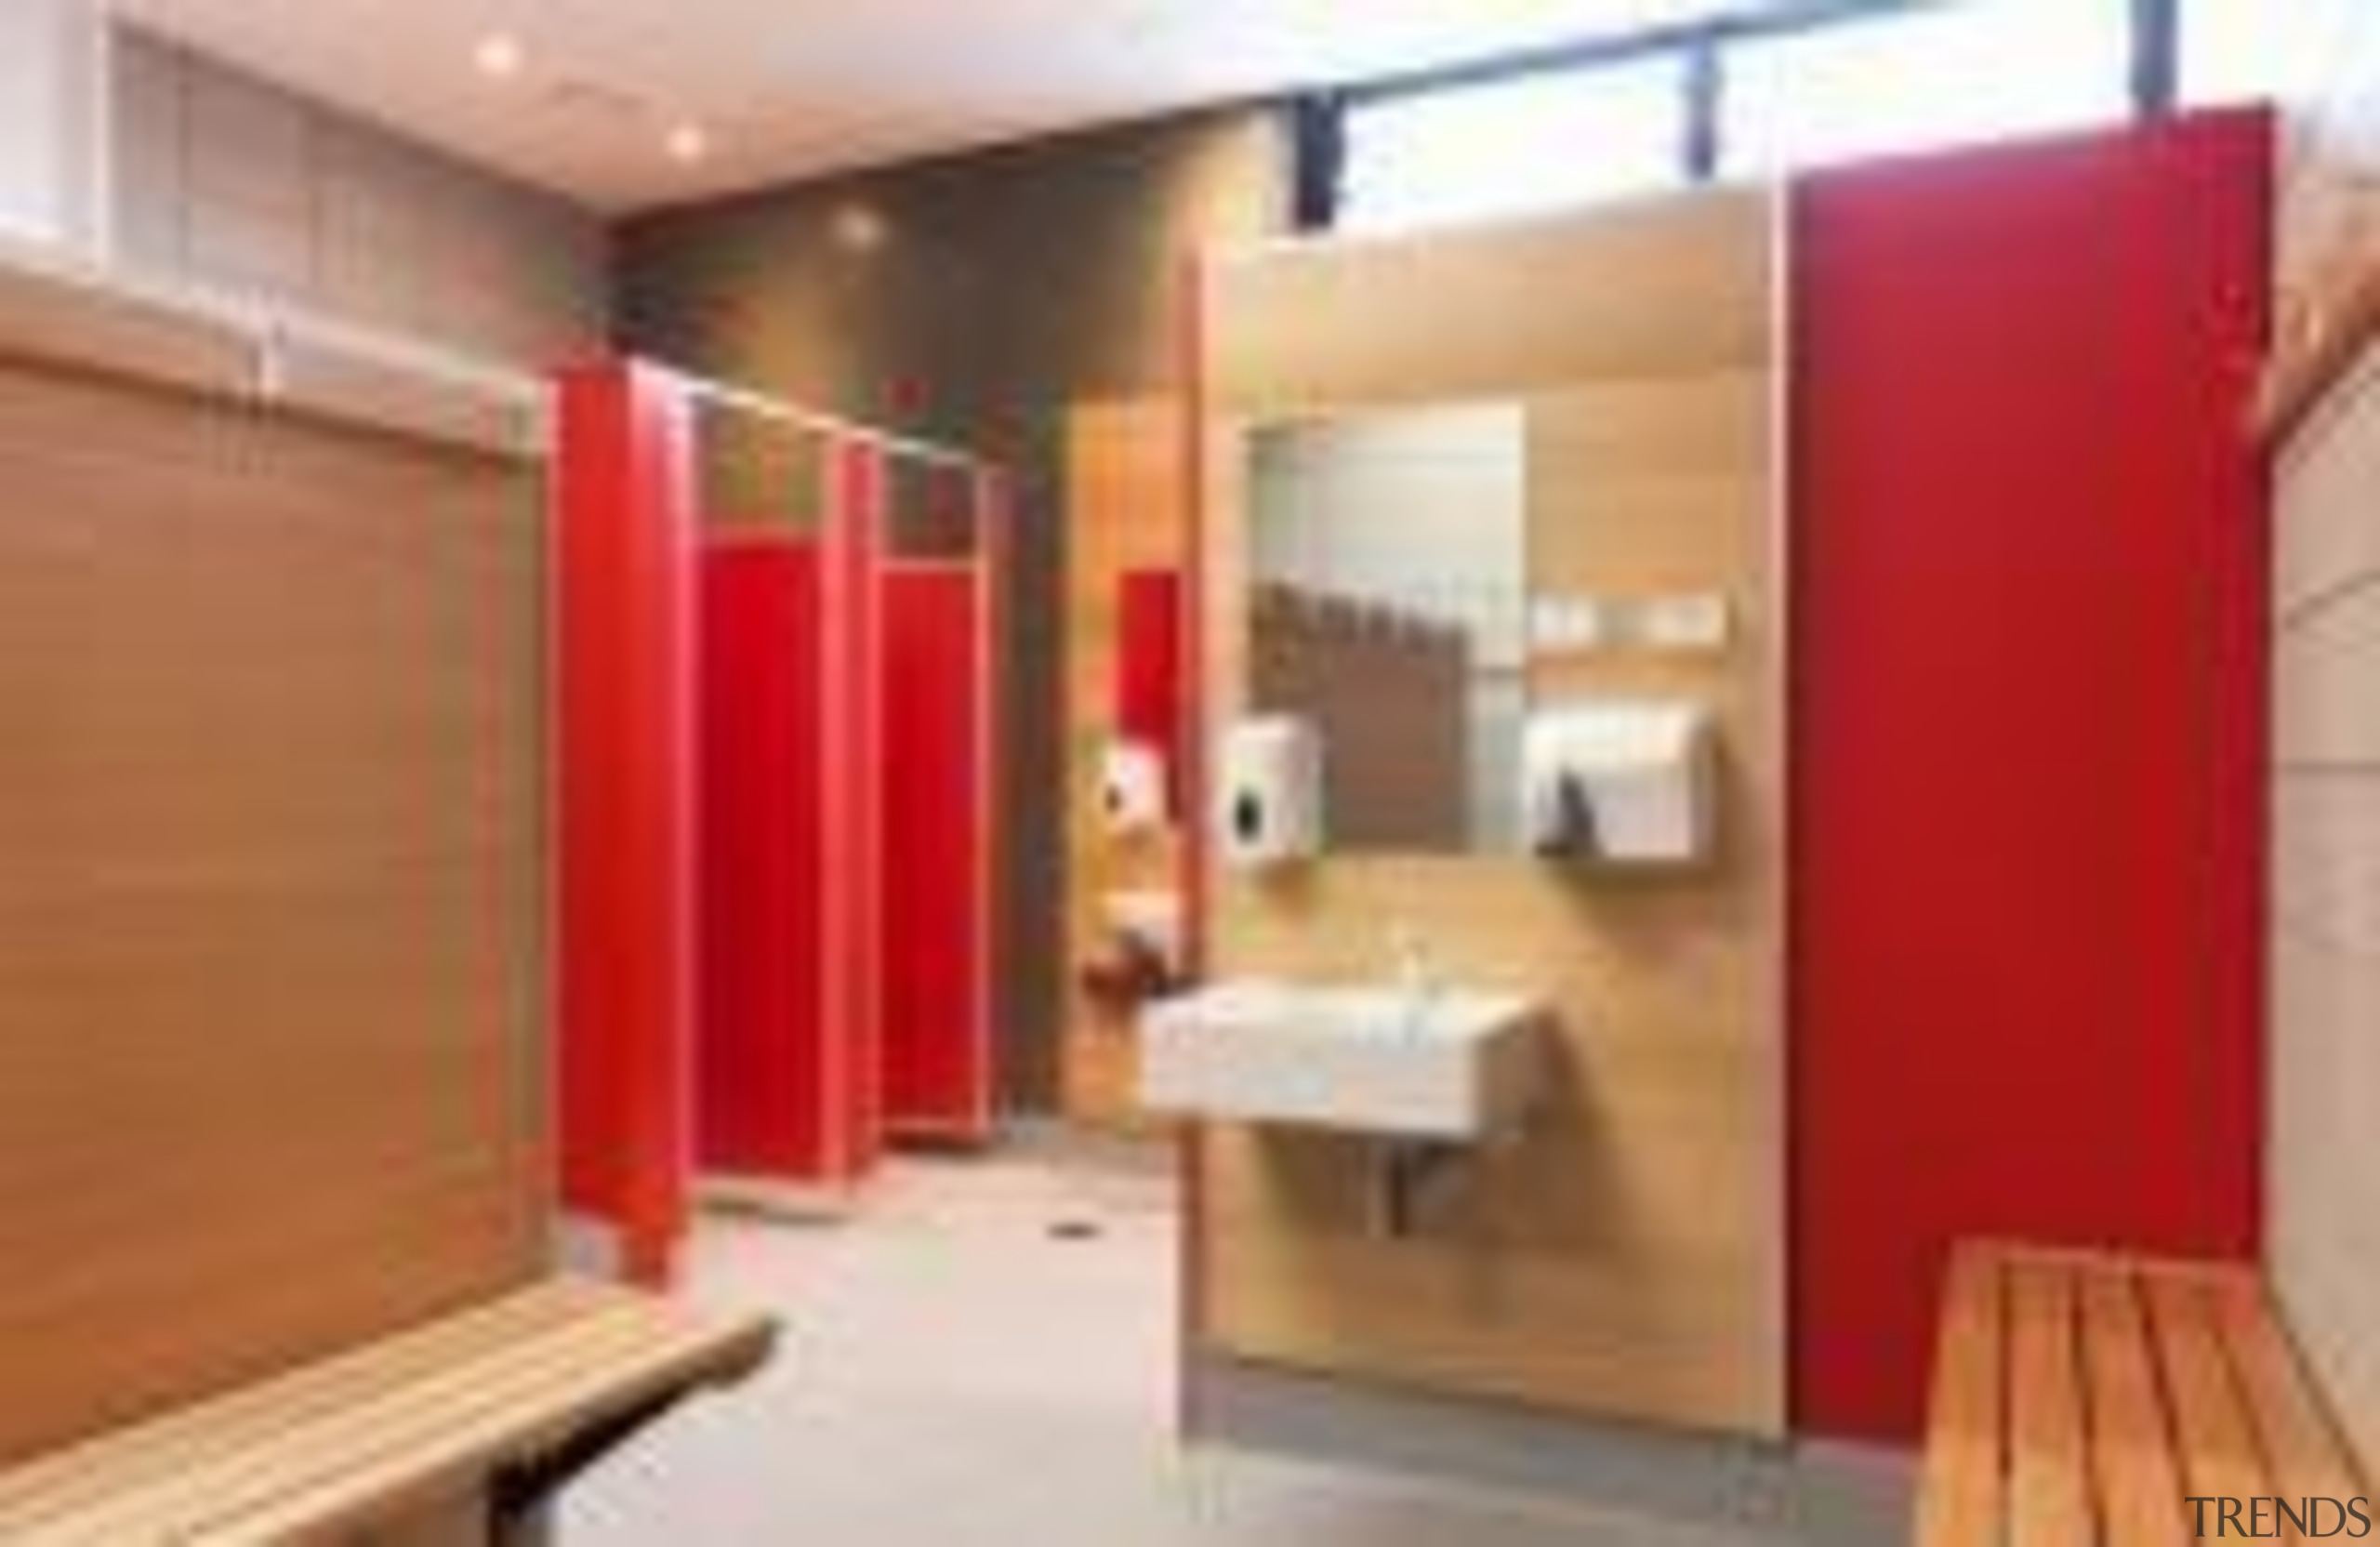 Changing room at St Mary's College Designed by floor, interior design, property, real estate, room, wood, orange, red